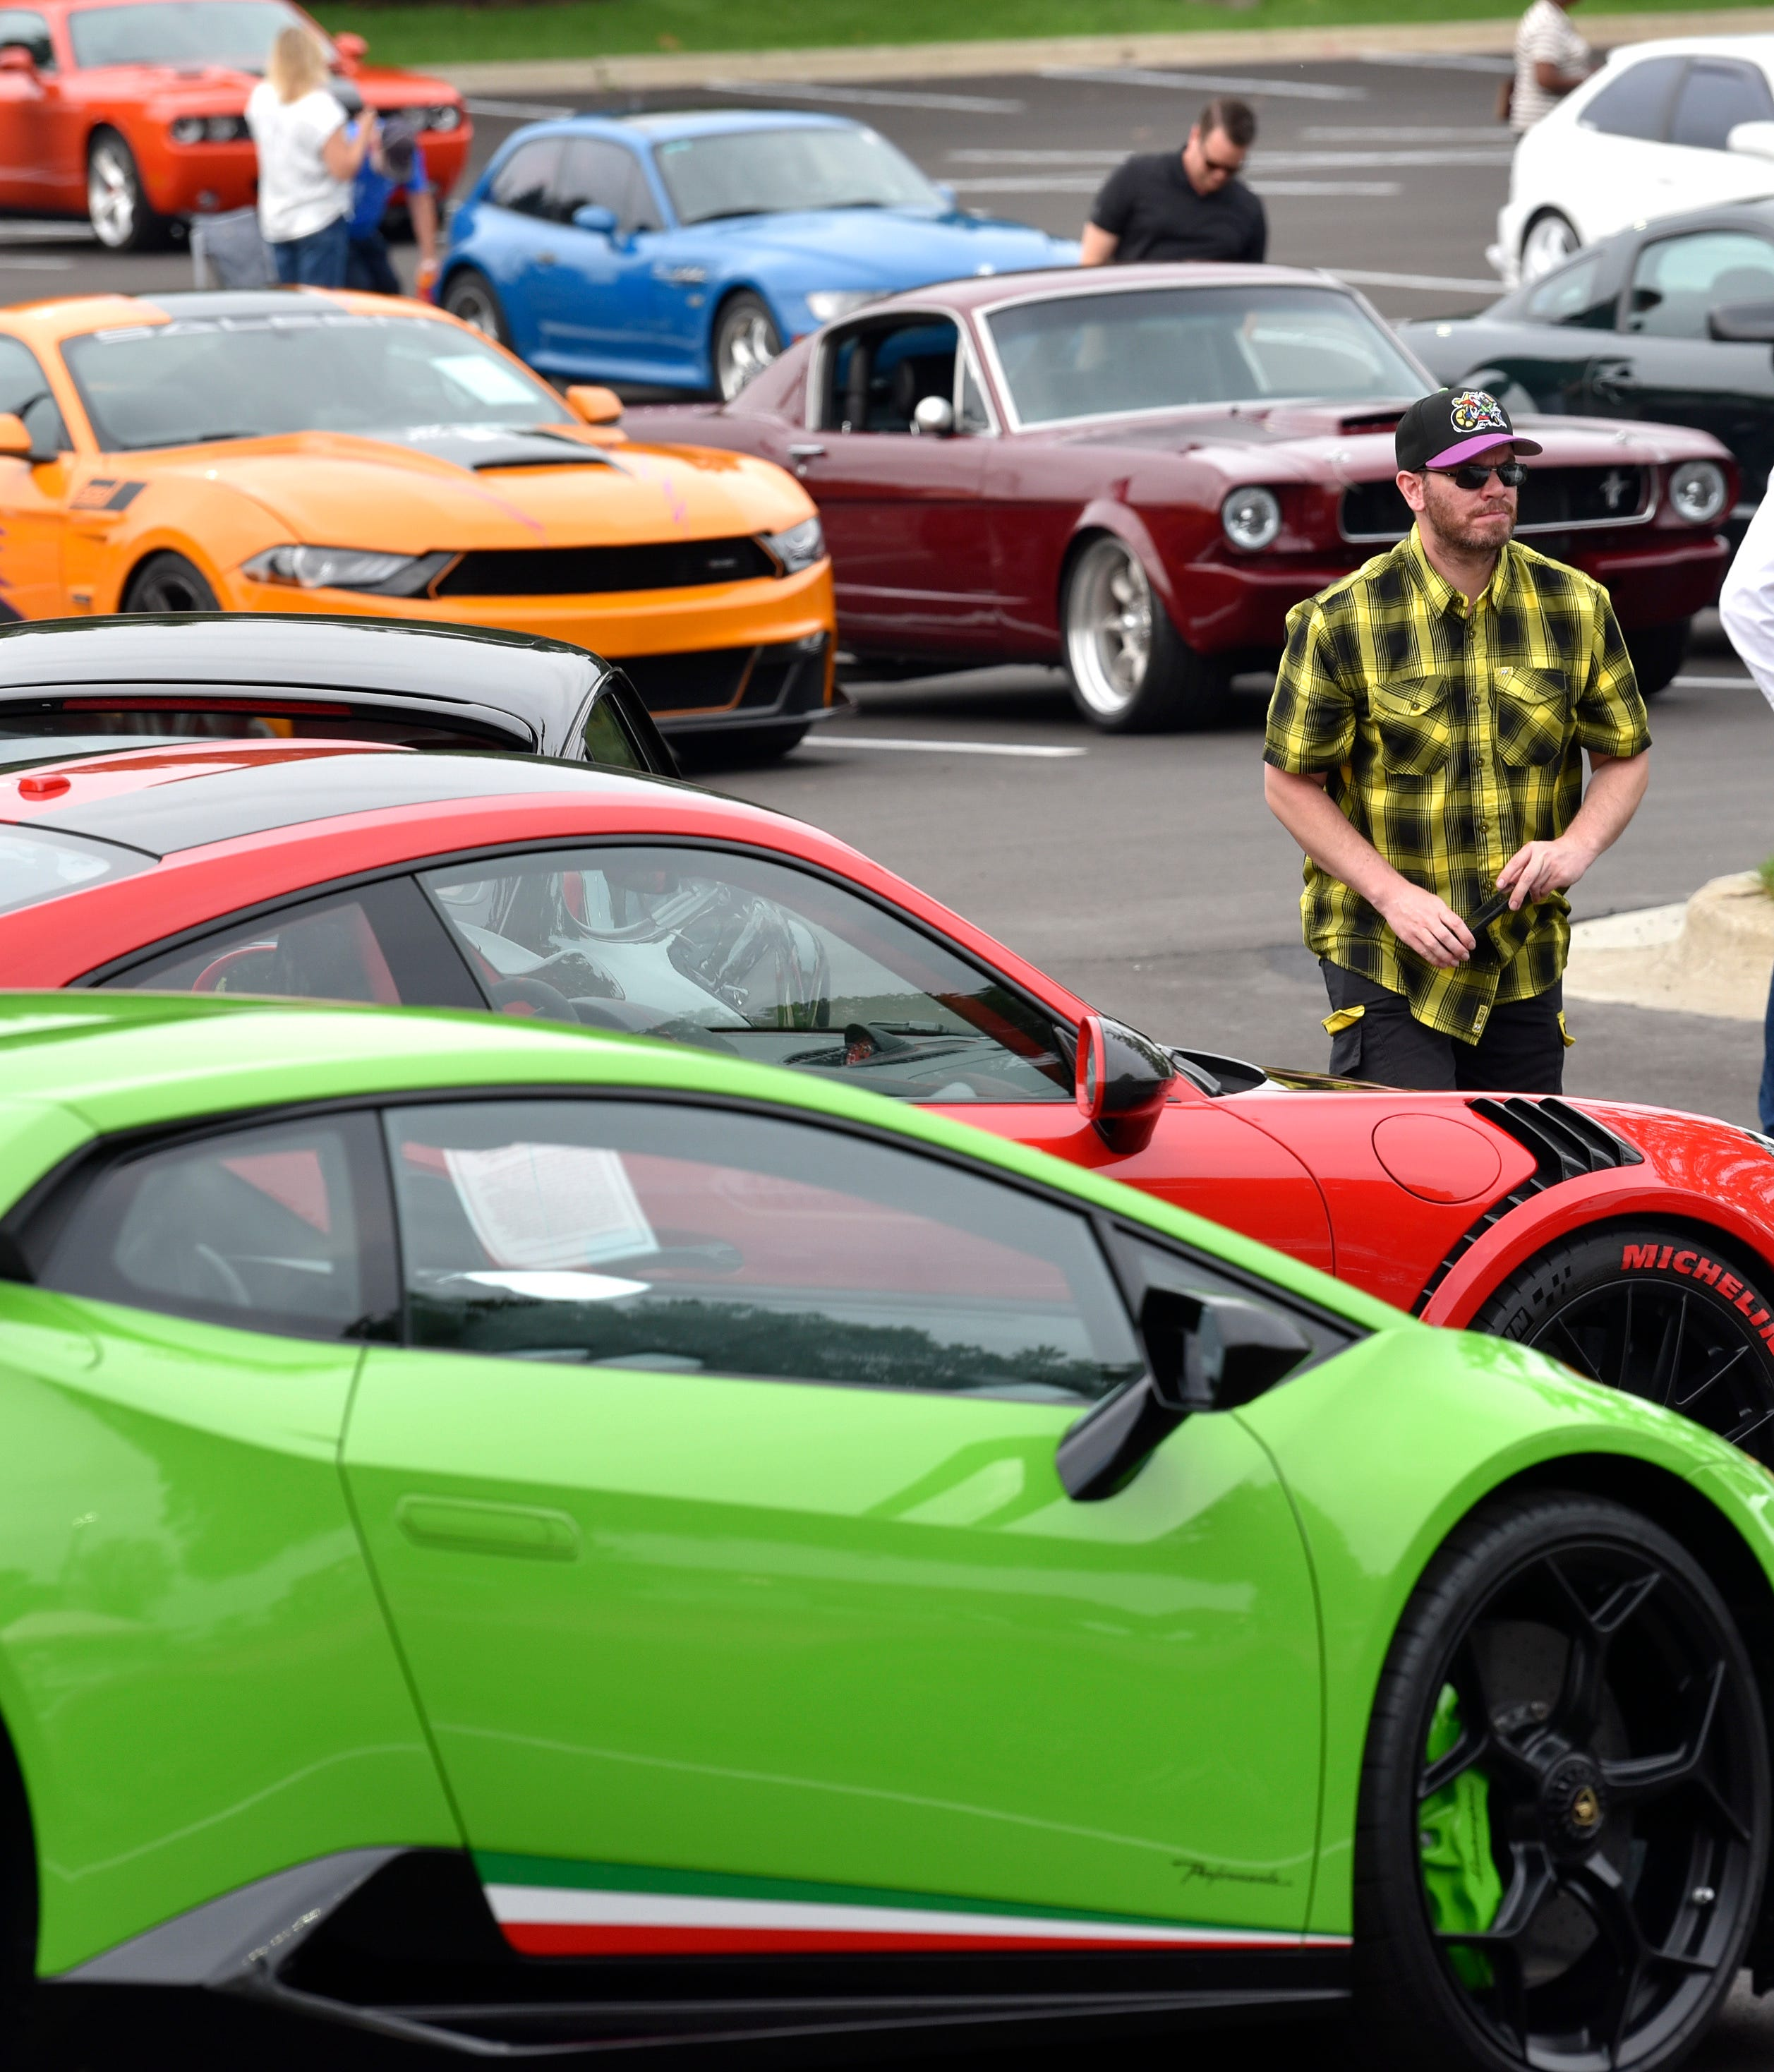 World-class vehicles on display as Concours d'Elegance returns